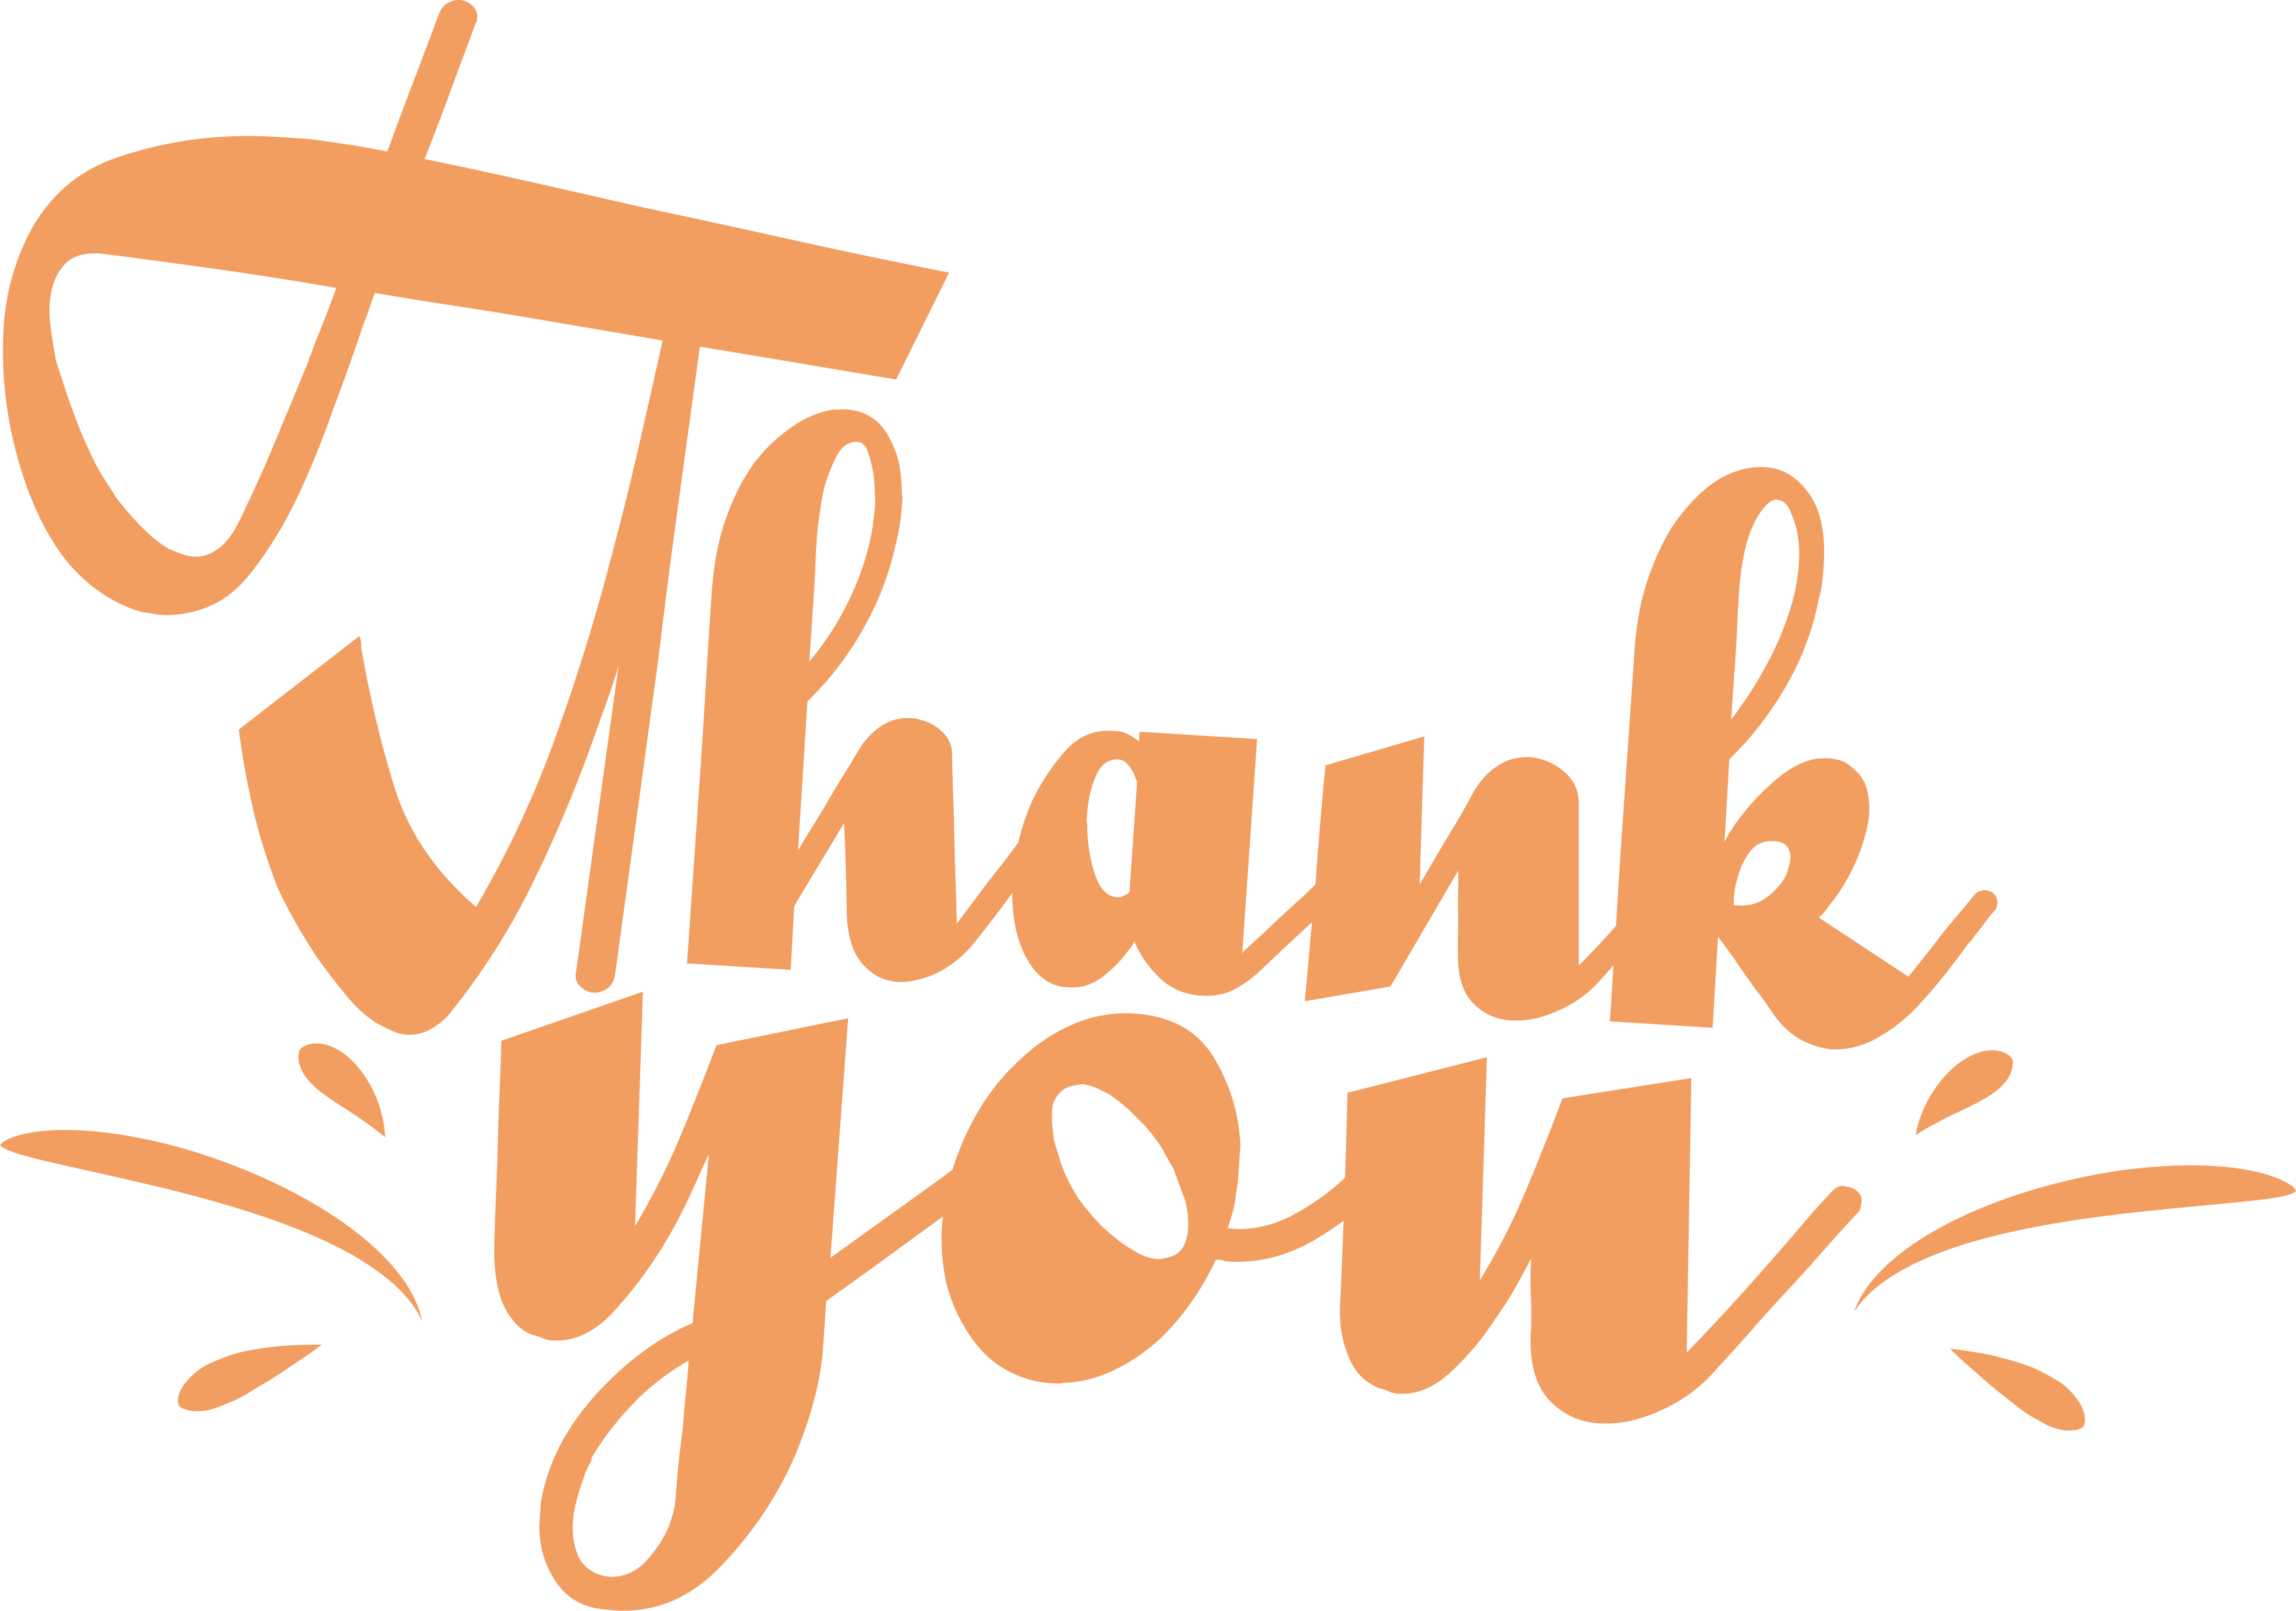 4268x2994 15 Typography Vector Thank You For Free Download On Mbtskoudsalg